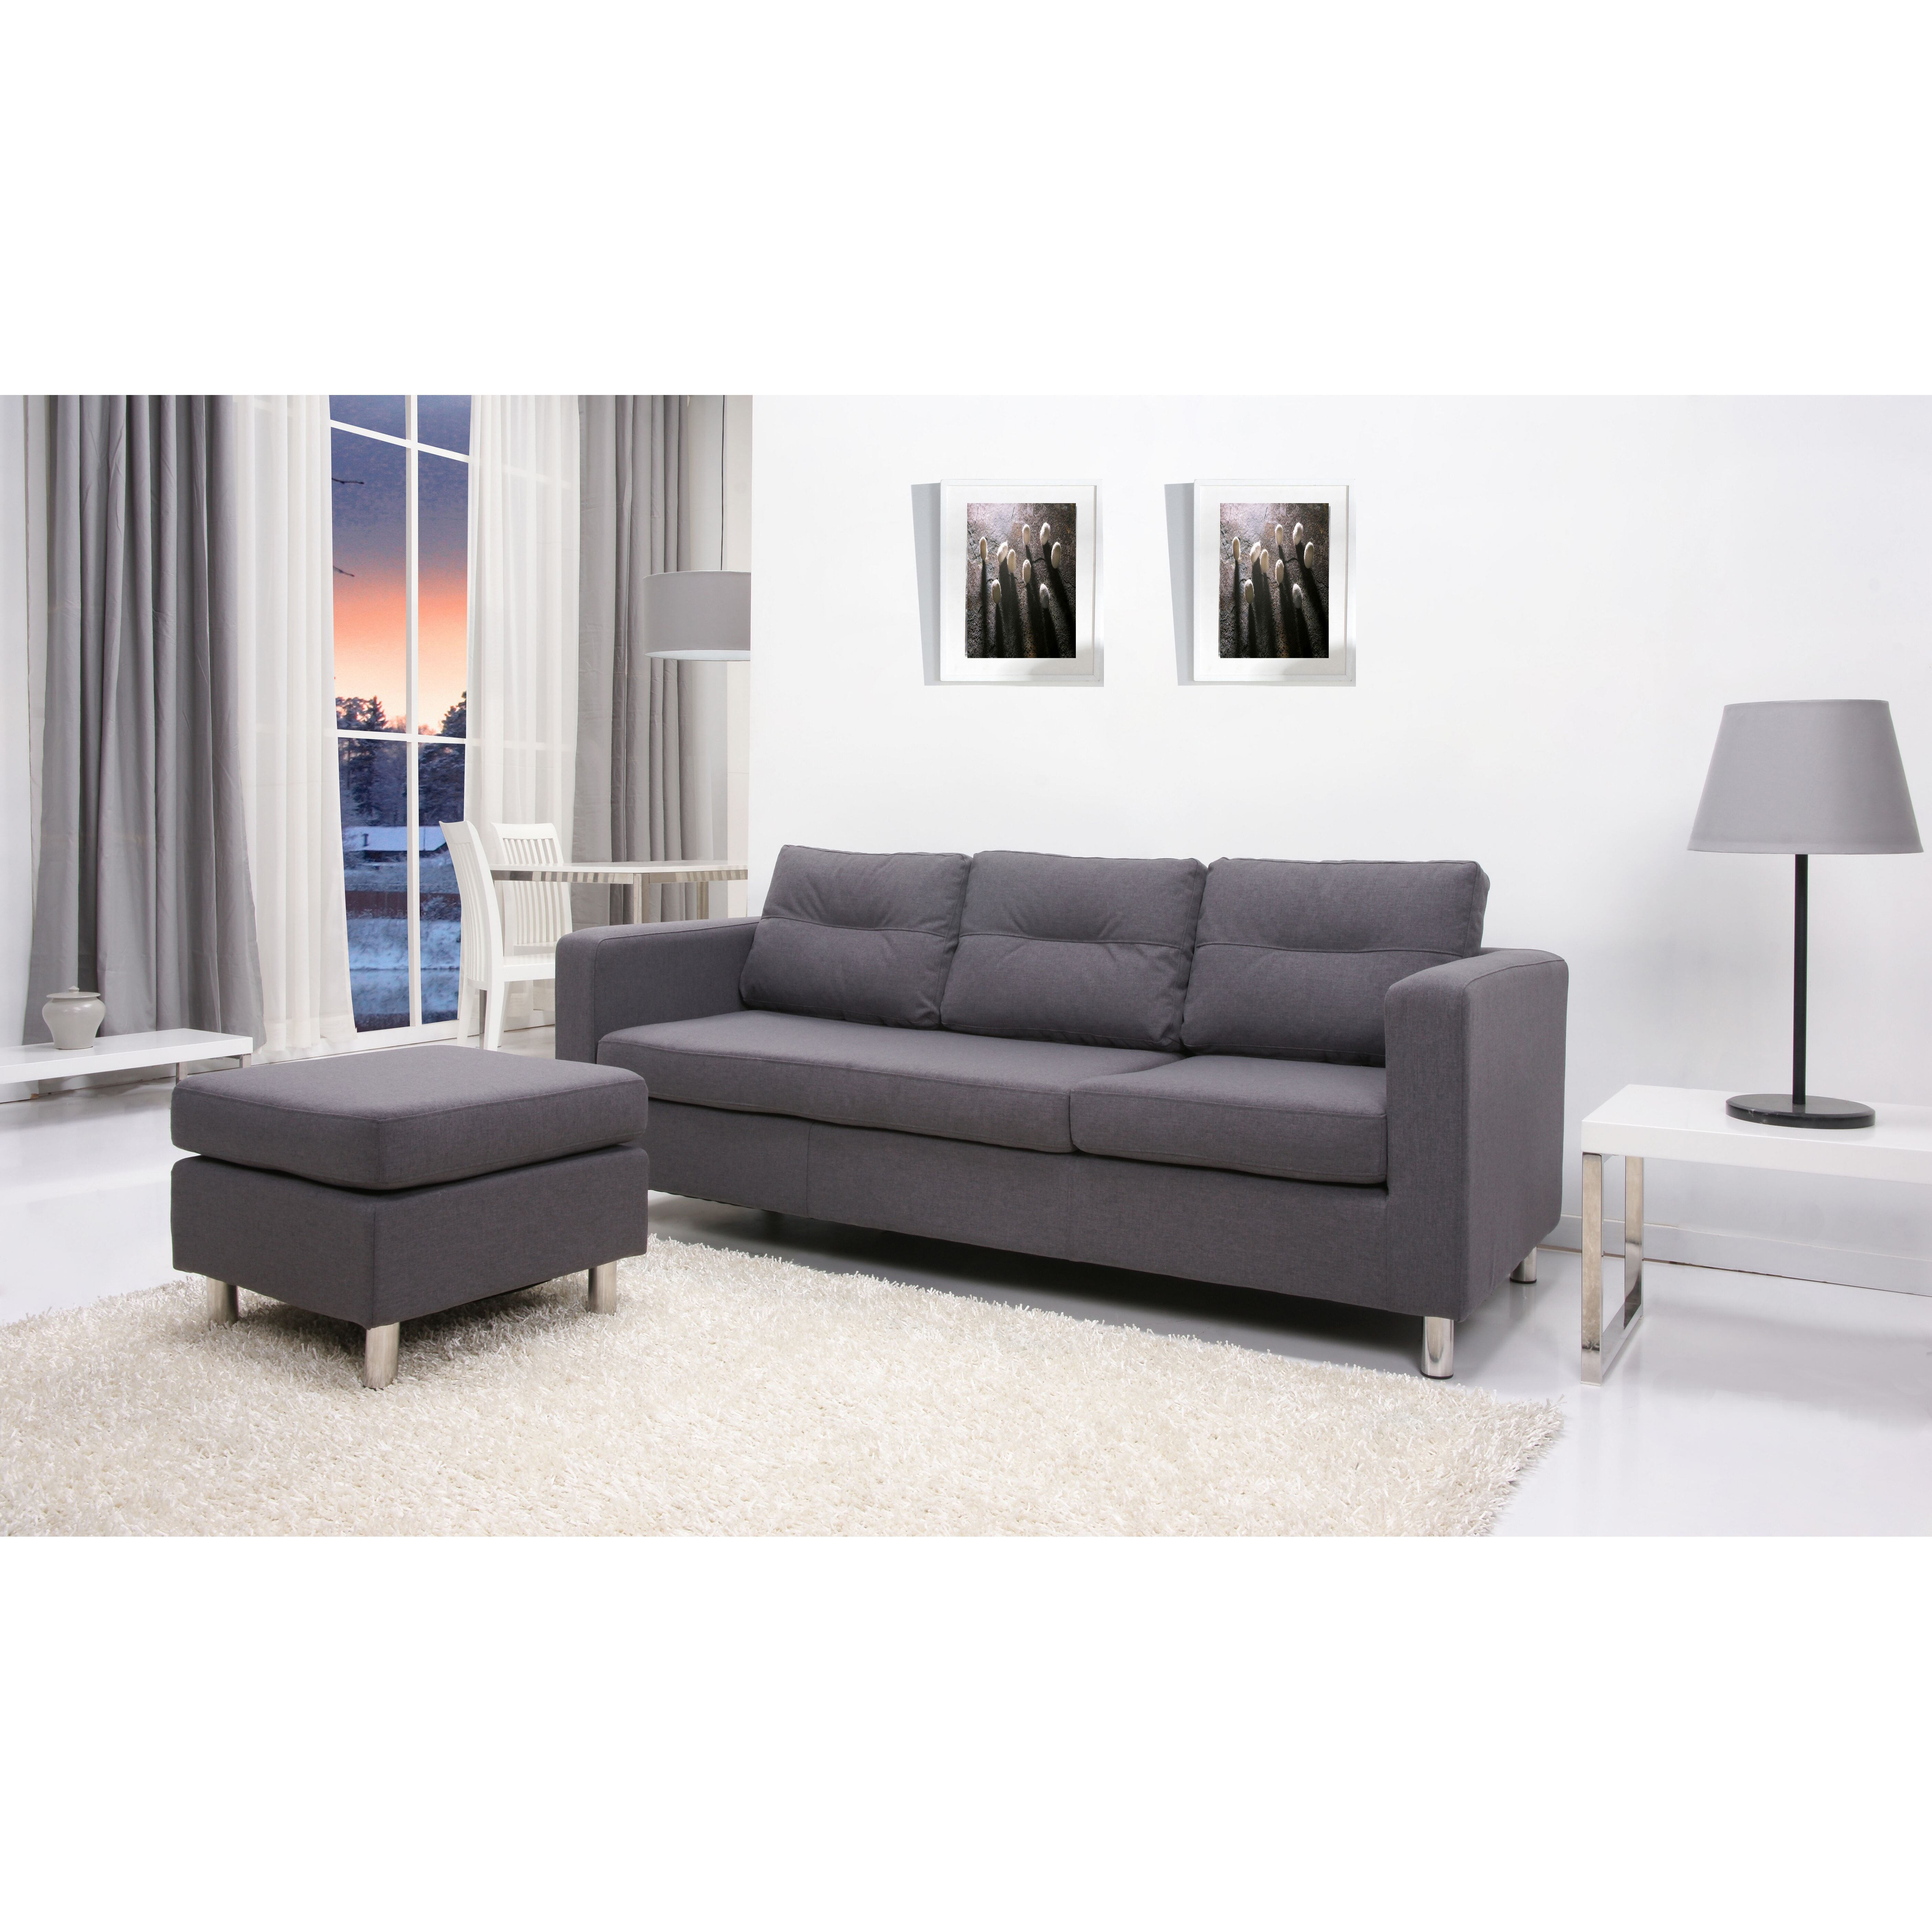 Leader lifestyle osaka reversible chaise corner sofa for Chaise corner sofas uk